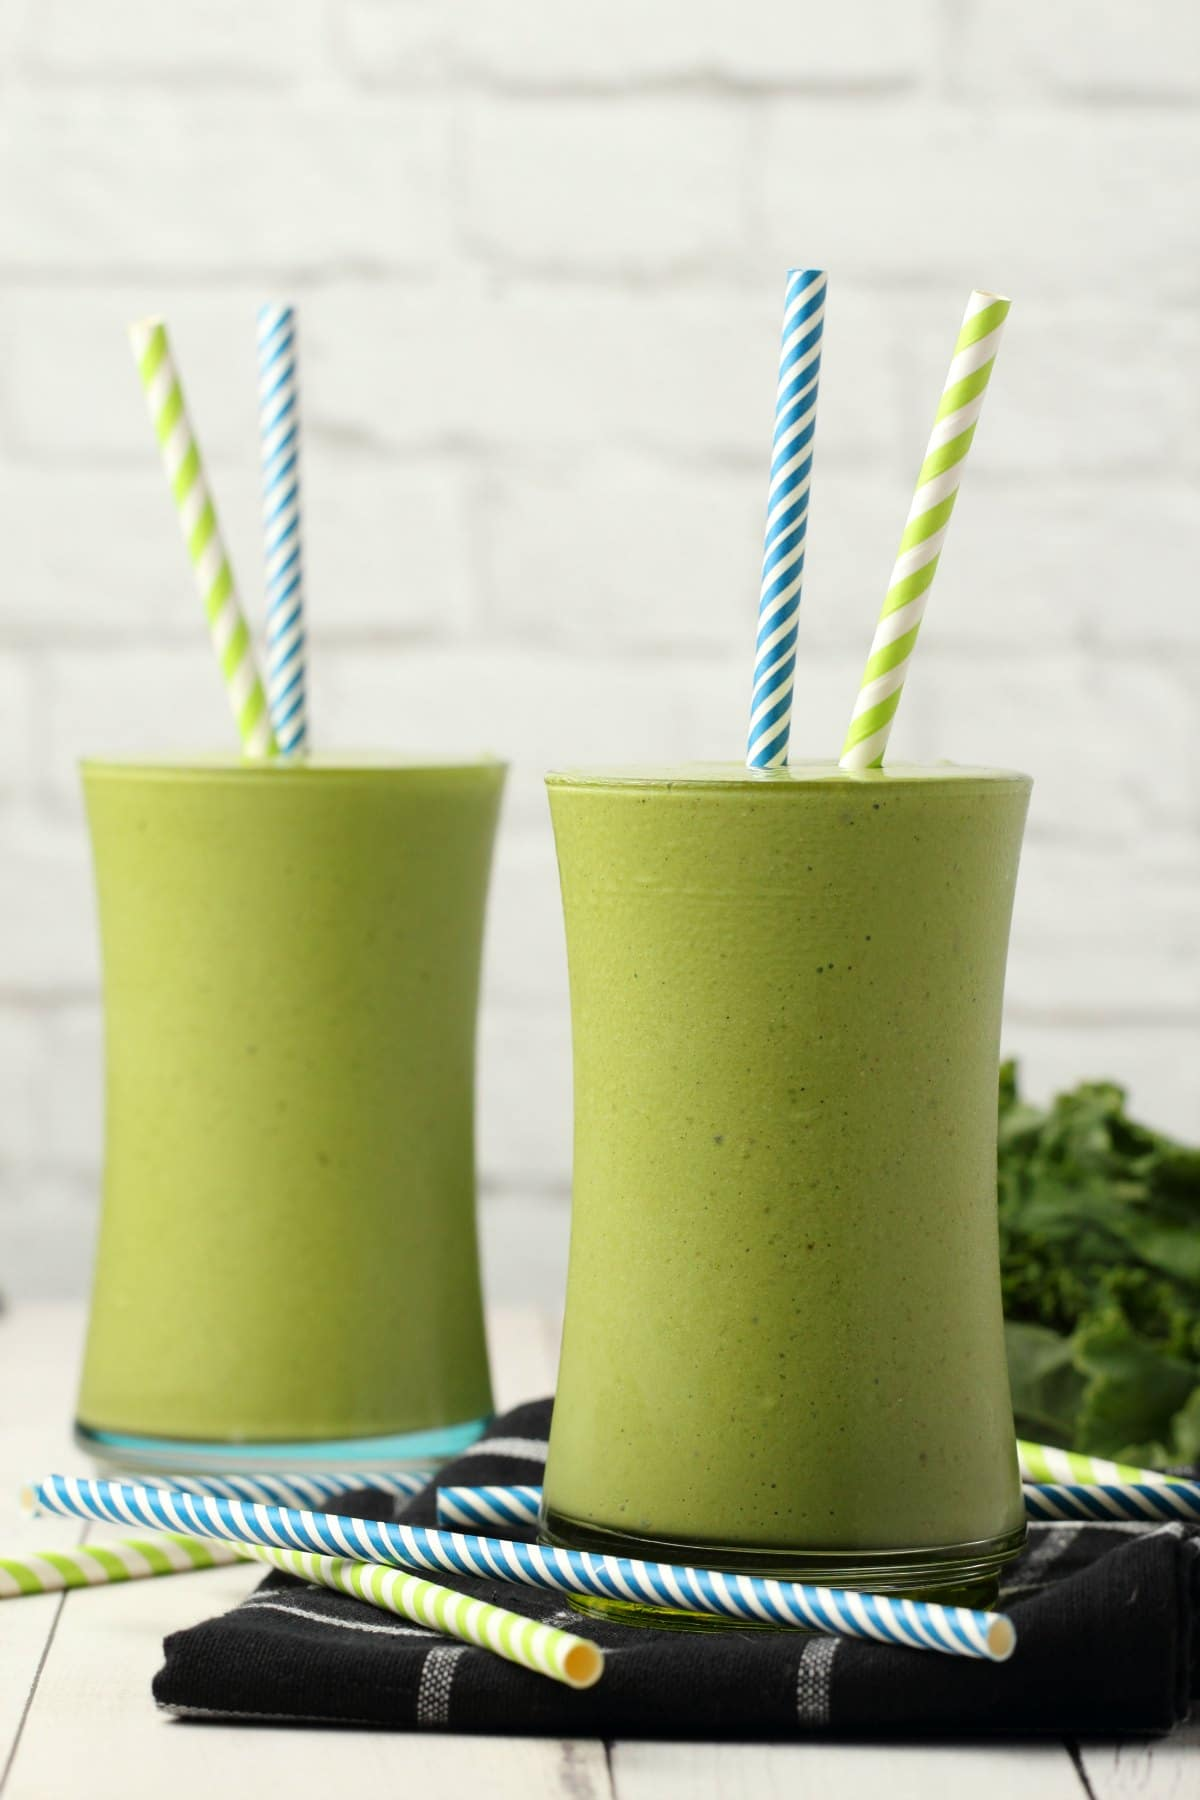 Kale Smoothie in glasses with striped straws.